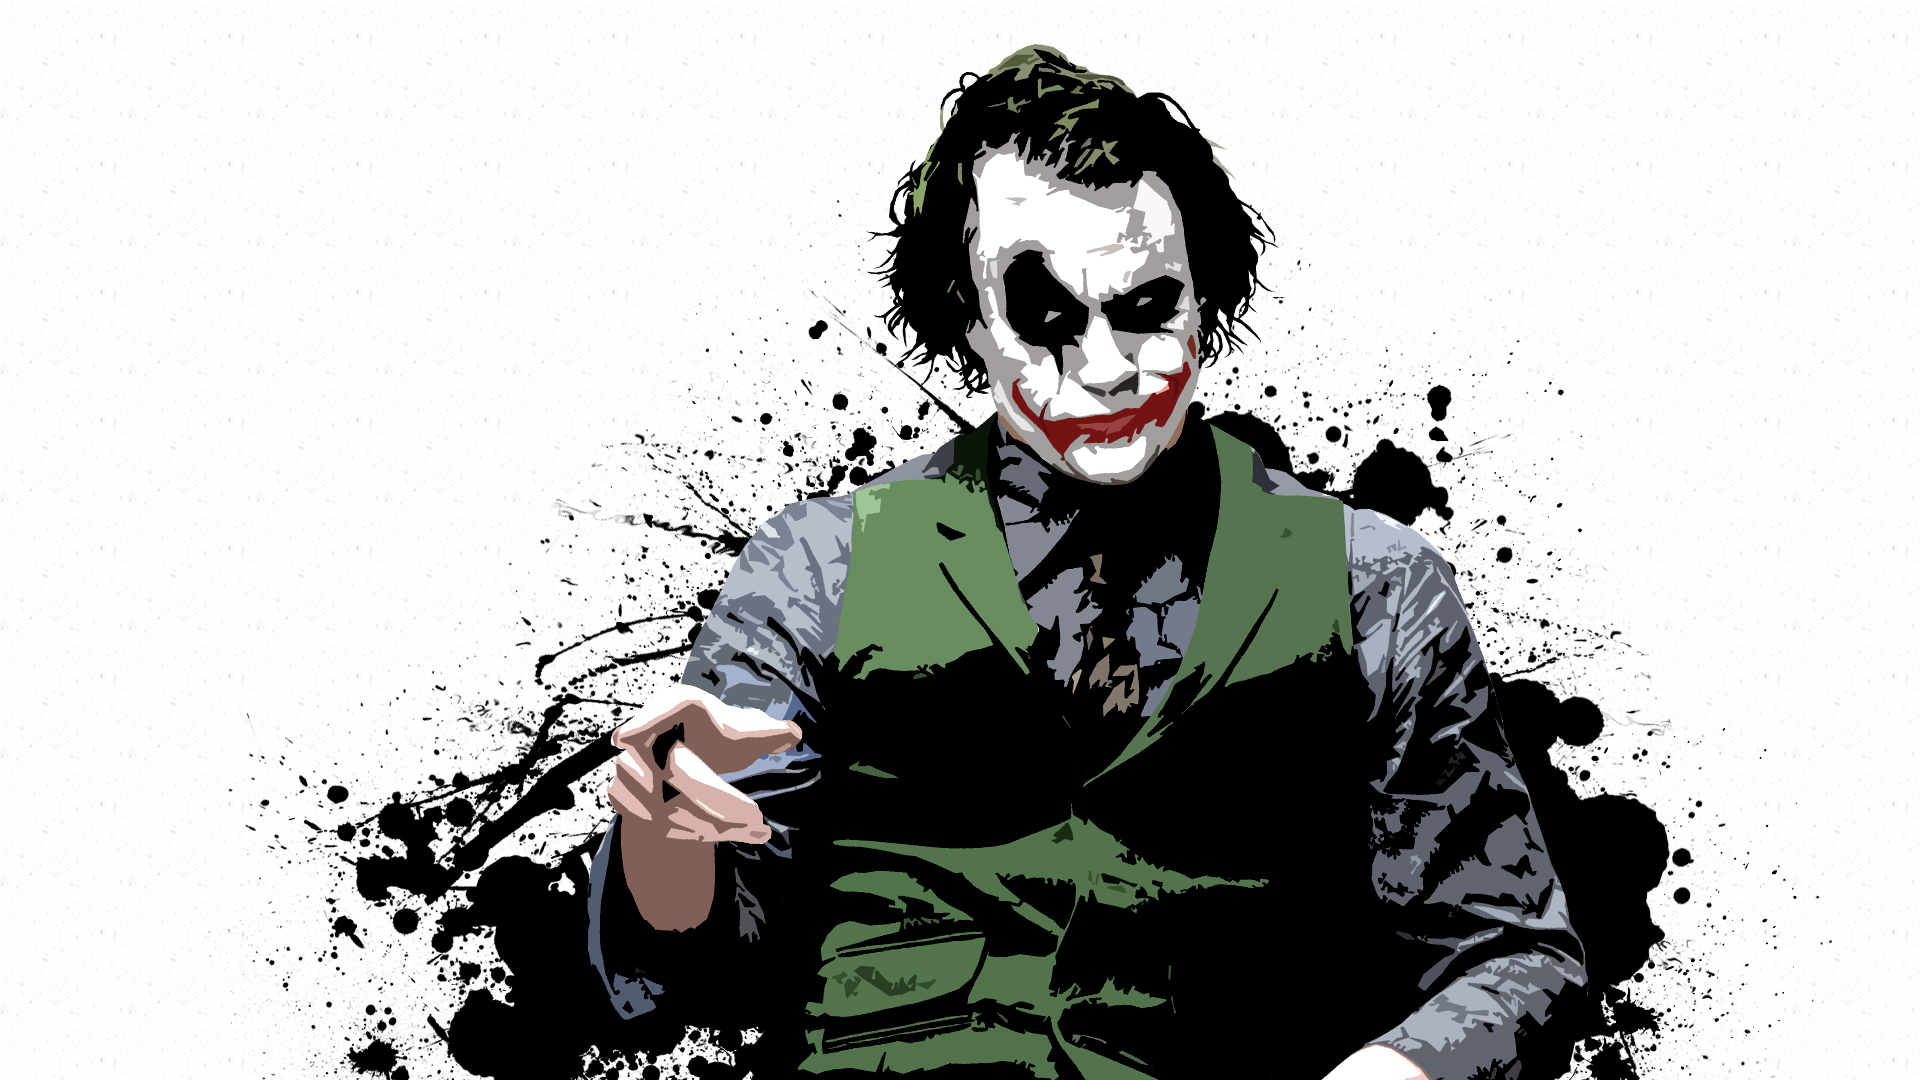 494 Joker HD Wallpapers | Backgrounds - Wallpaper Abyss